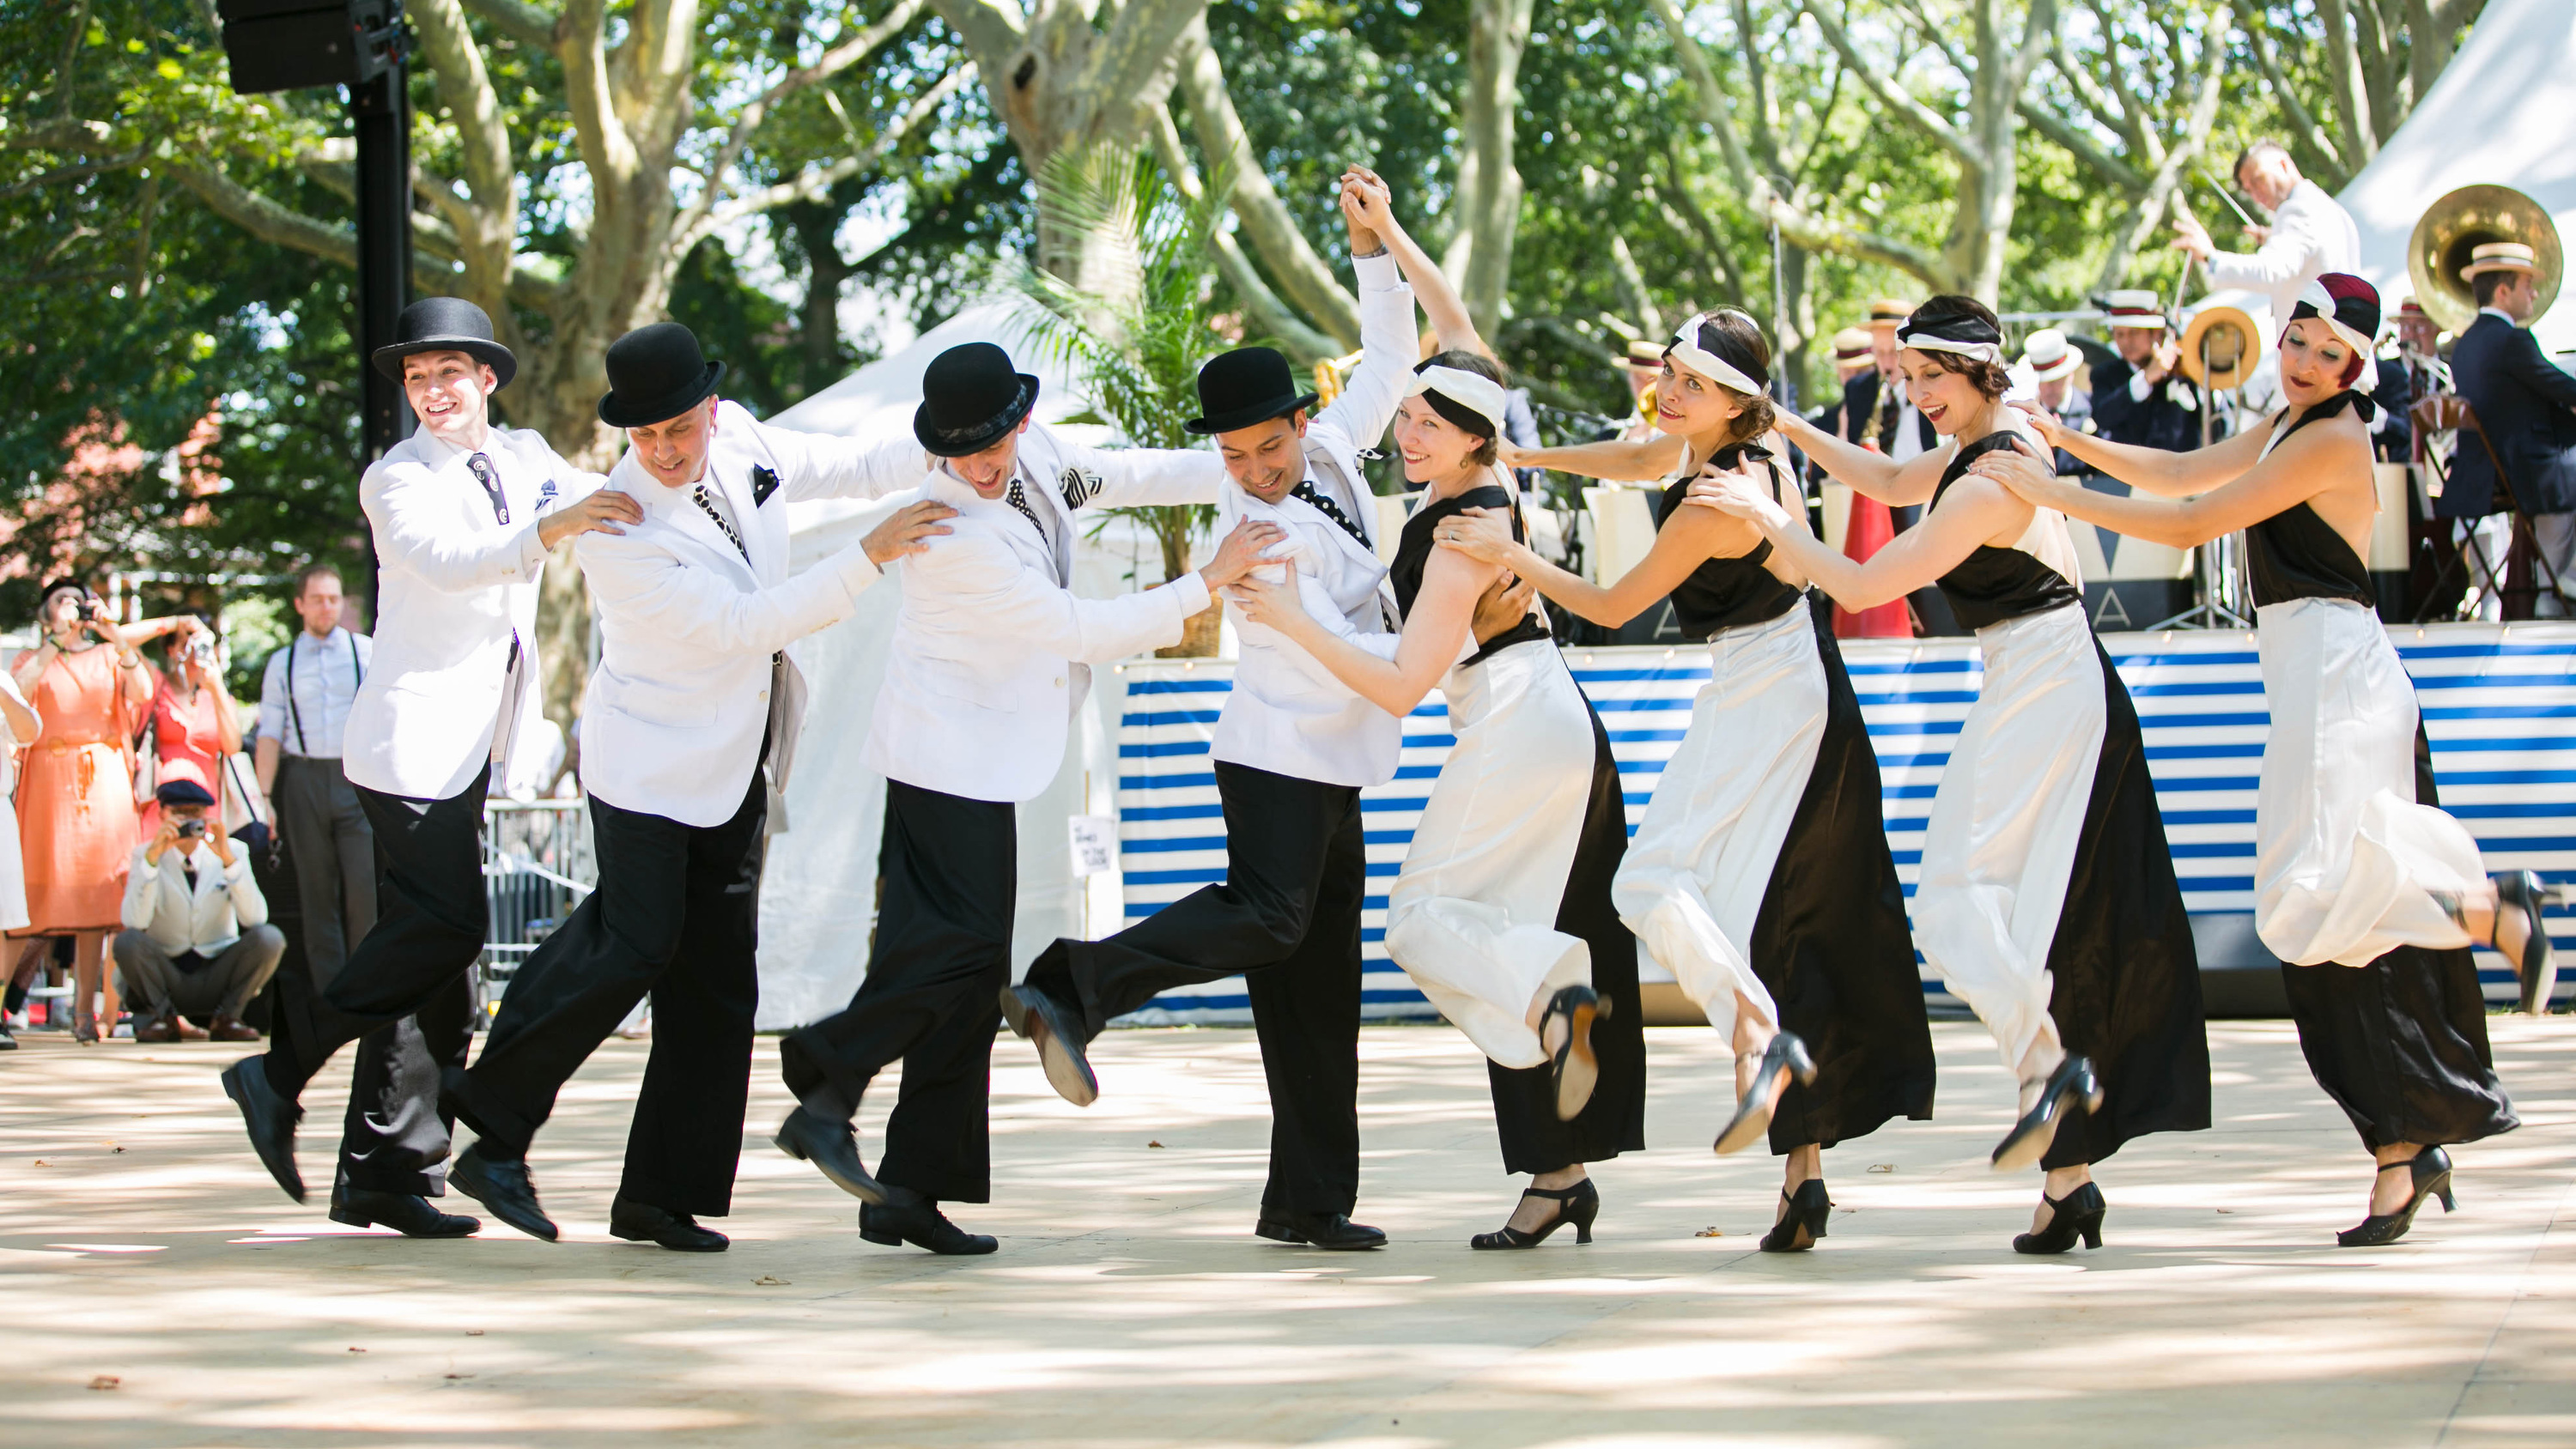 See our favorite photos from the 2015 Jazz Age Lawn Party